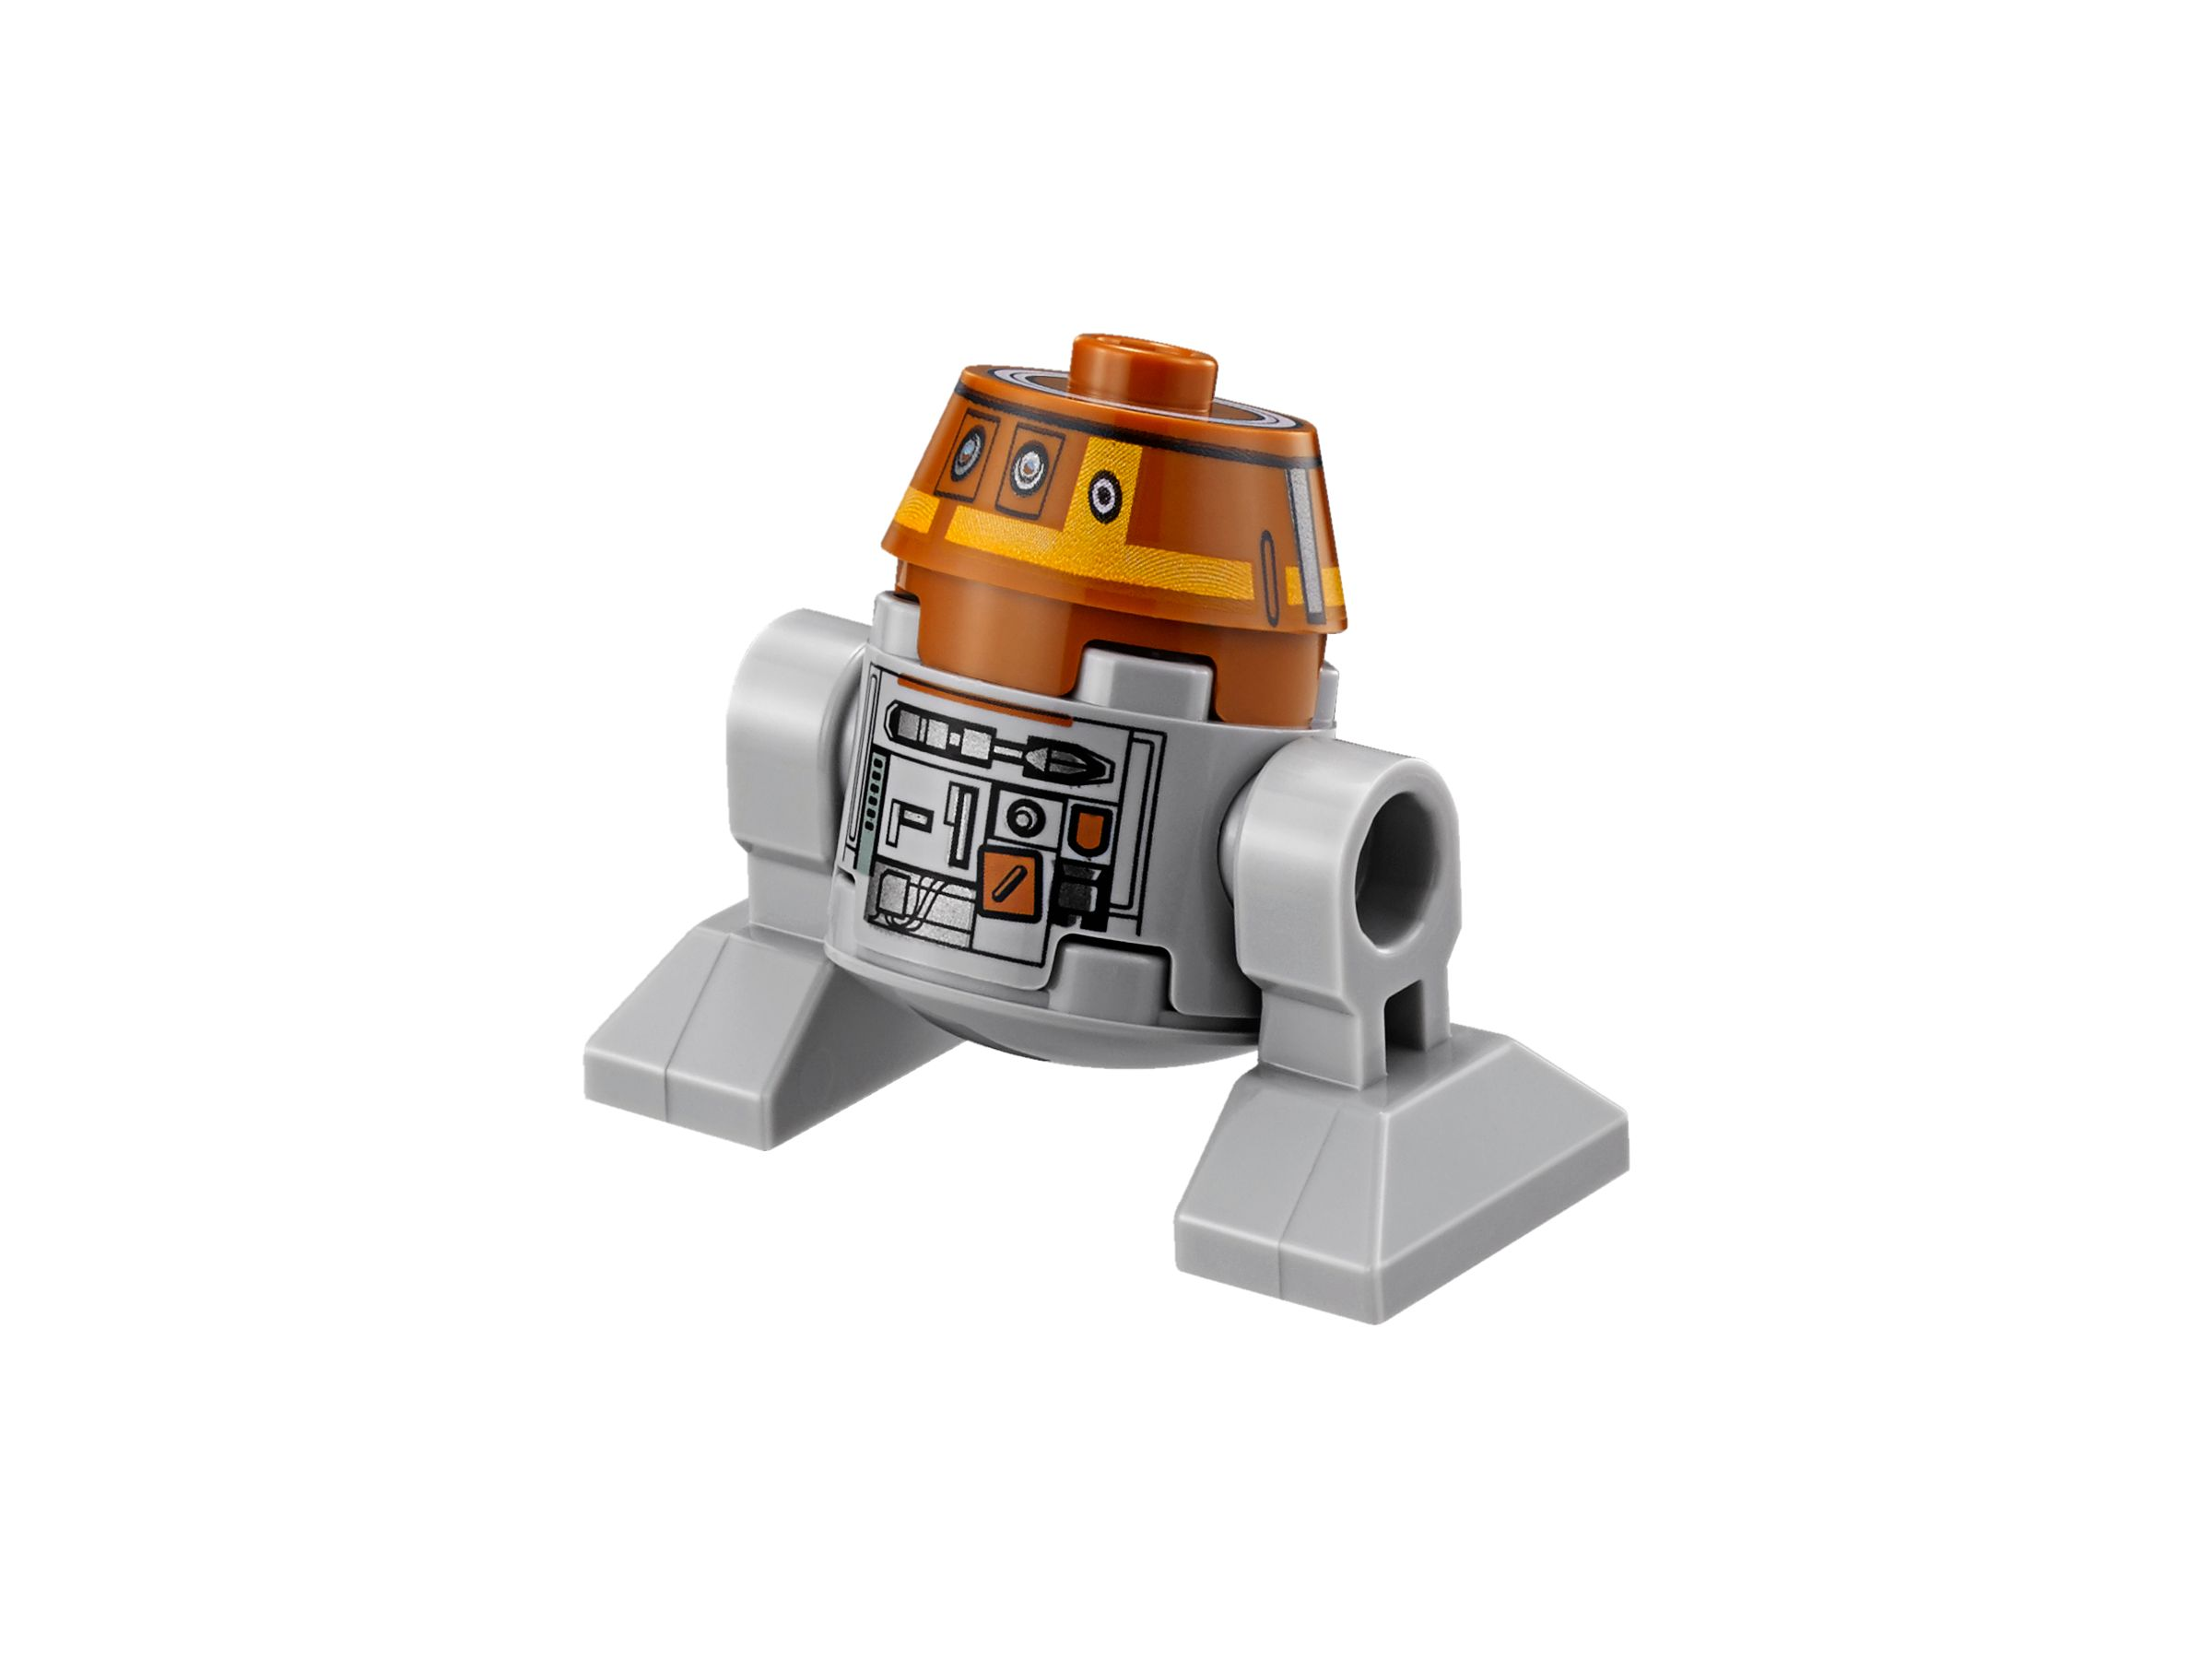 LEGO Star Wars 75170 The Phantom LEGO_75170_alt5.jpg